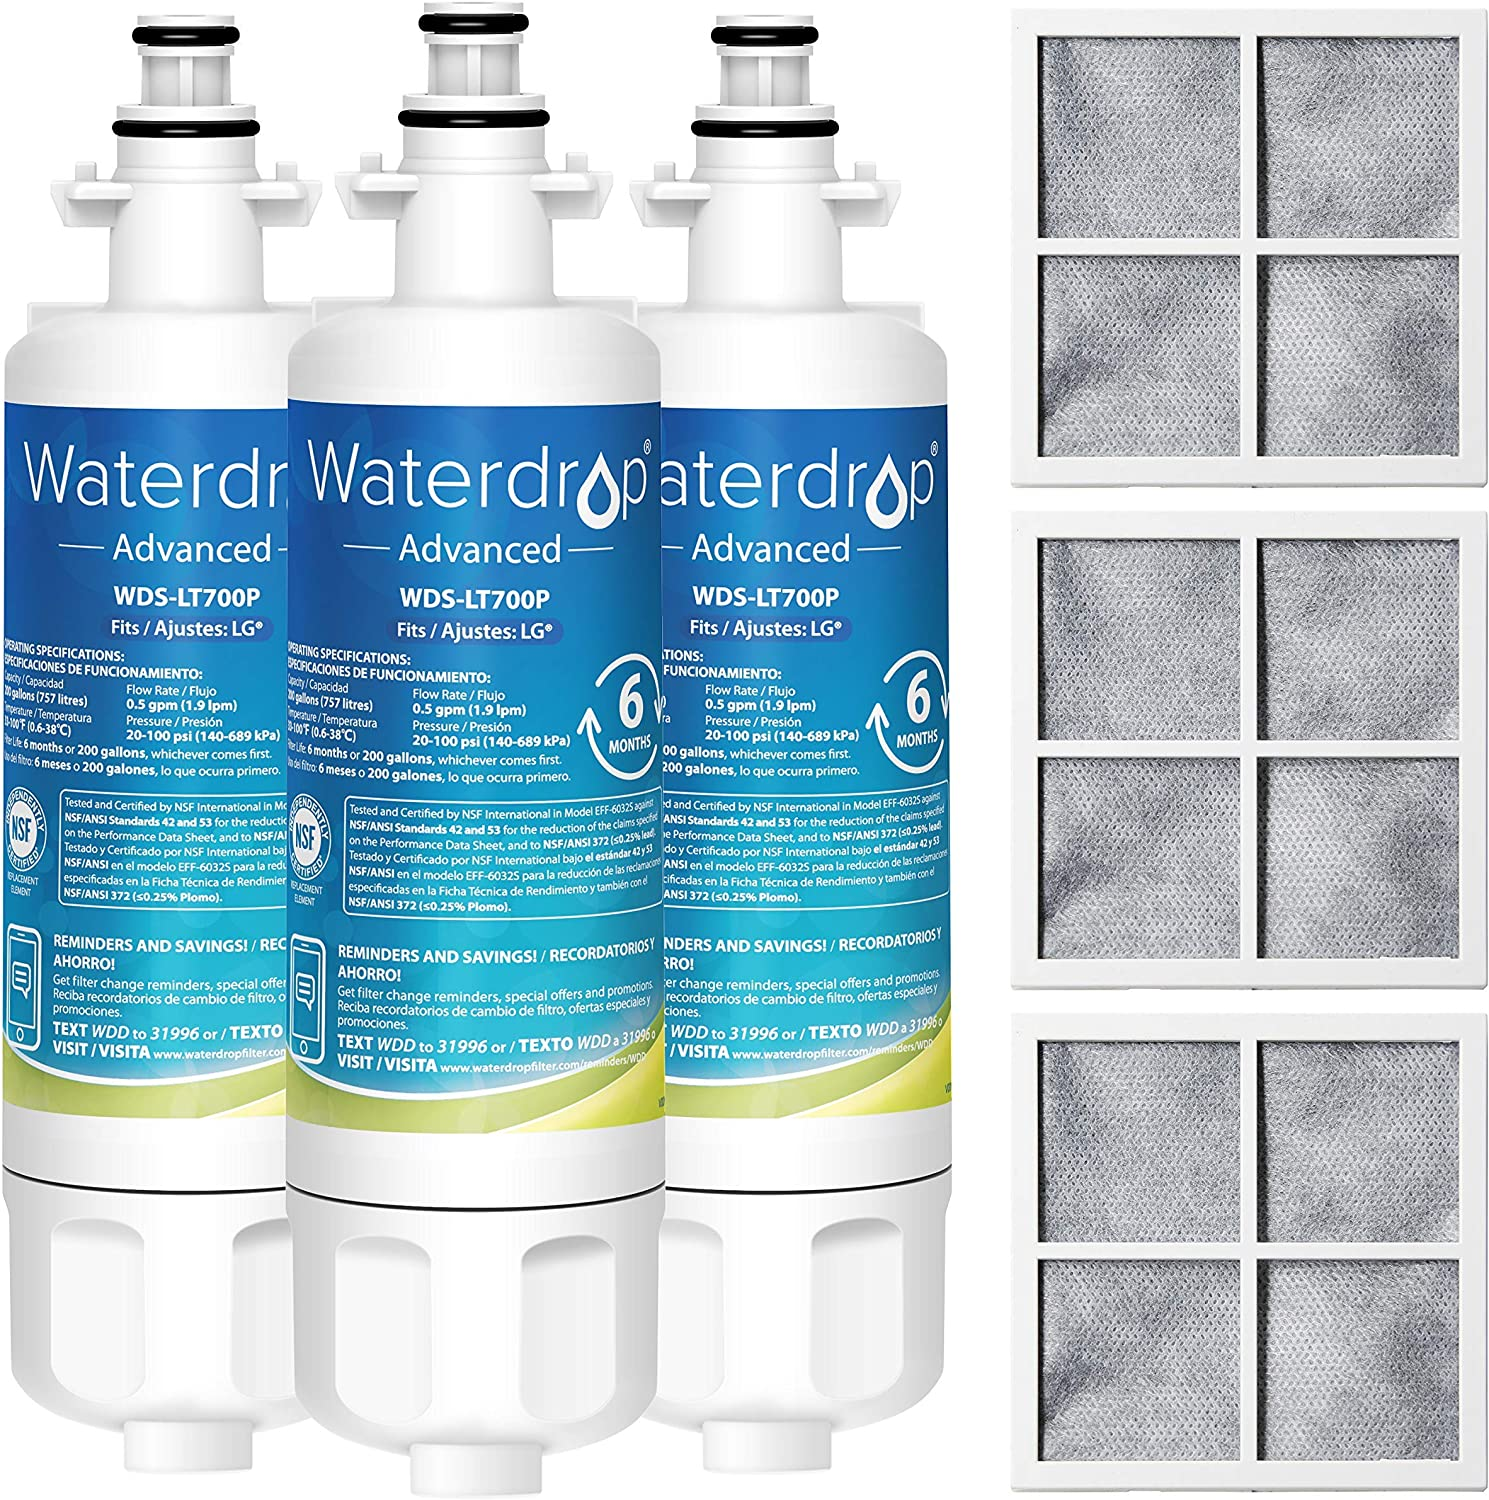 Waterdrop ADQ36006101 Replacement for LG LT700P, Kenmore 9690, 469690, ADQ36006102, LFXS30766S, RFC1200A, FML-3, RWF1200A Refrigerator Water and LT120F Air Filter, Package May Vary